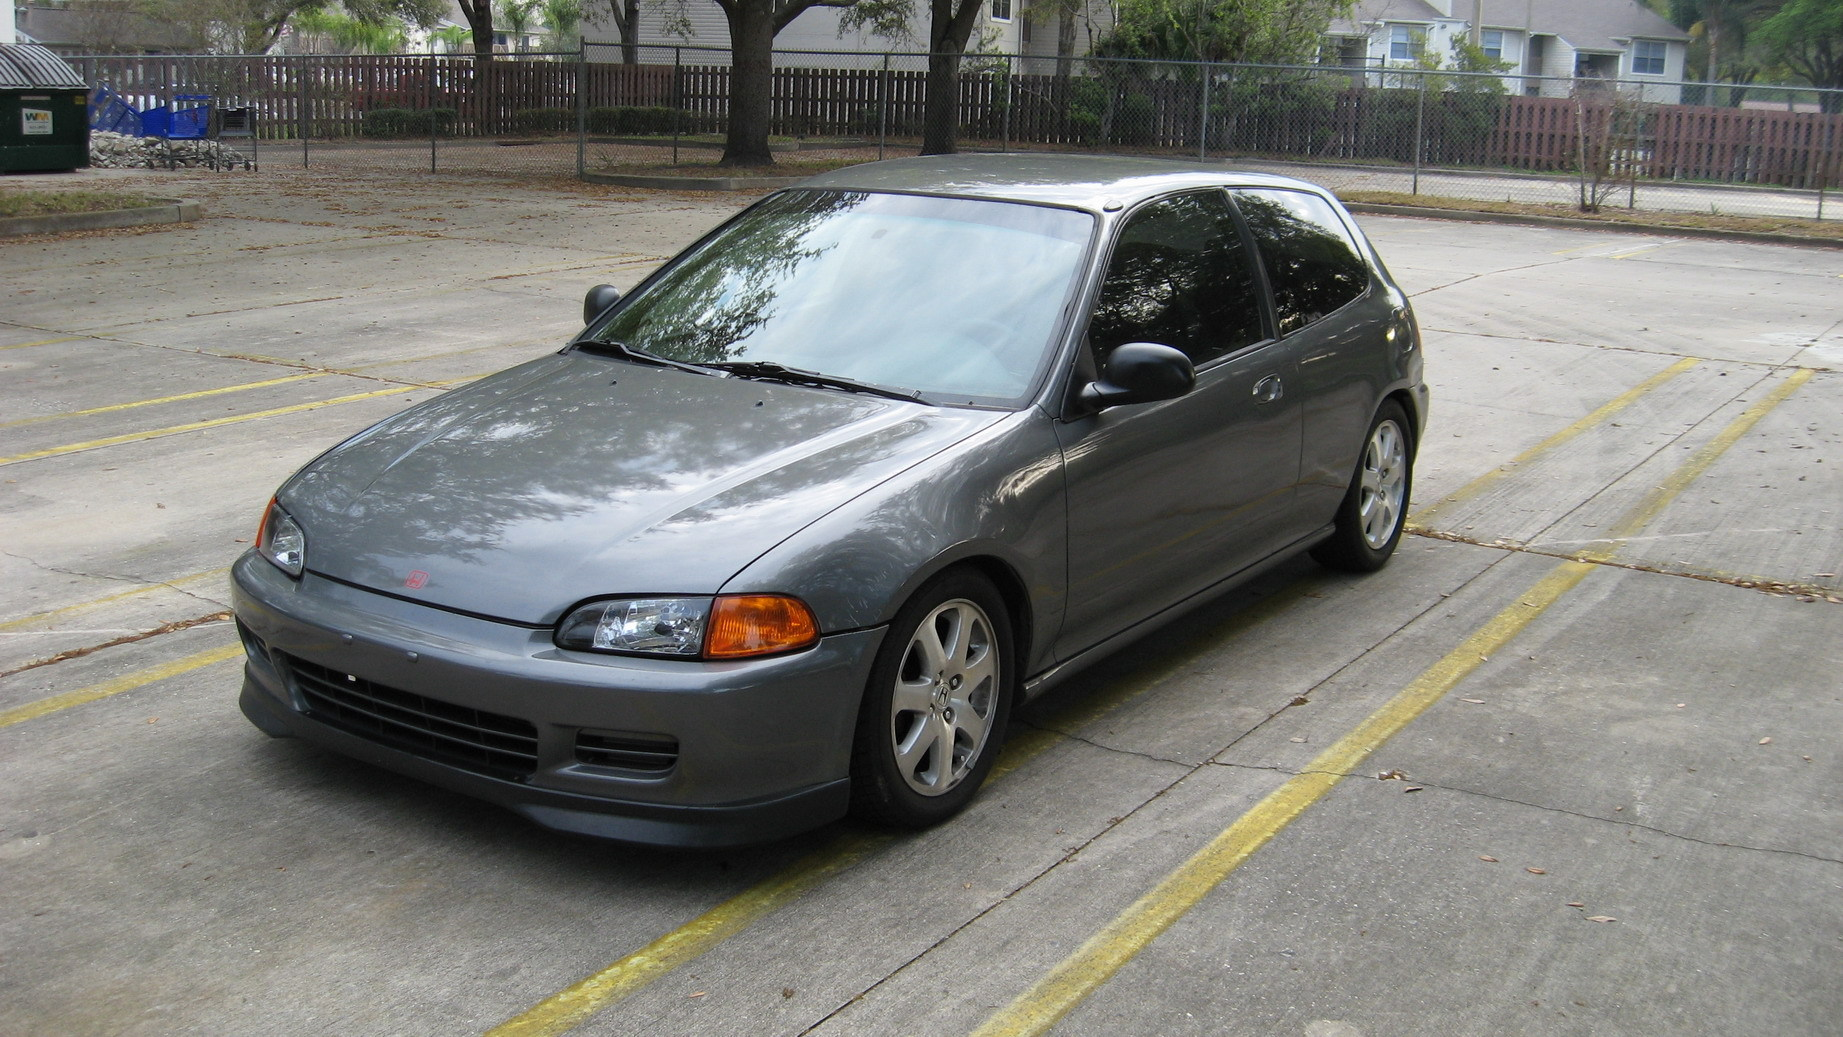 Cars honda civic hatchback v 1992 #13